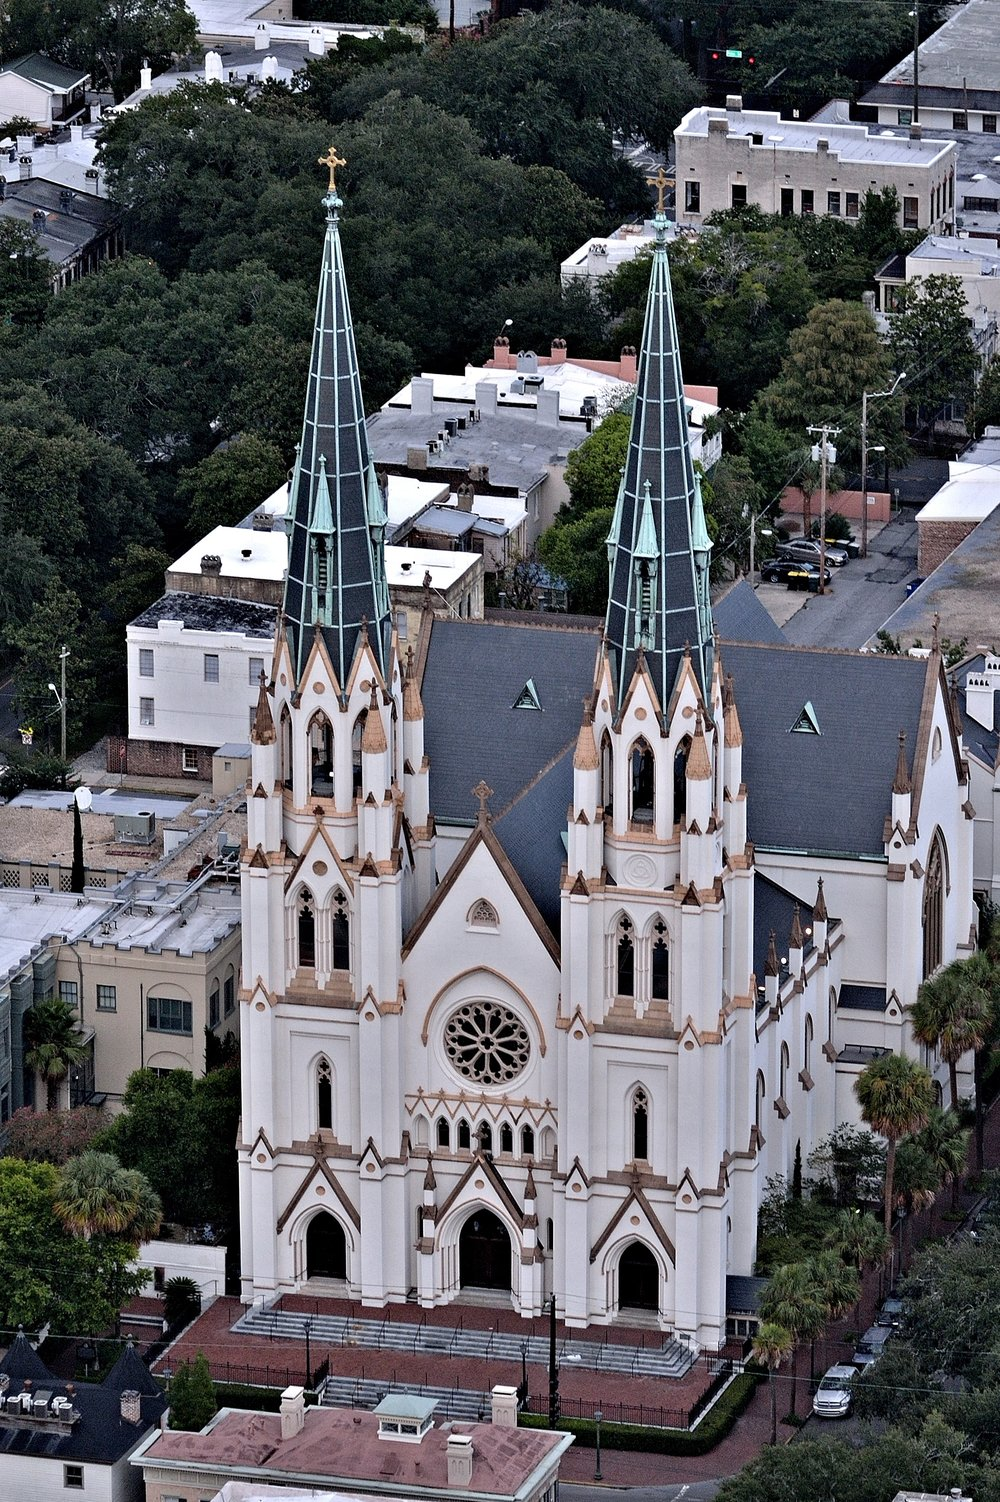 The Cathedral of St. John the Baptist, Savannah, GA